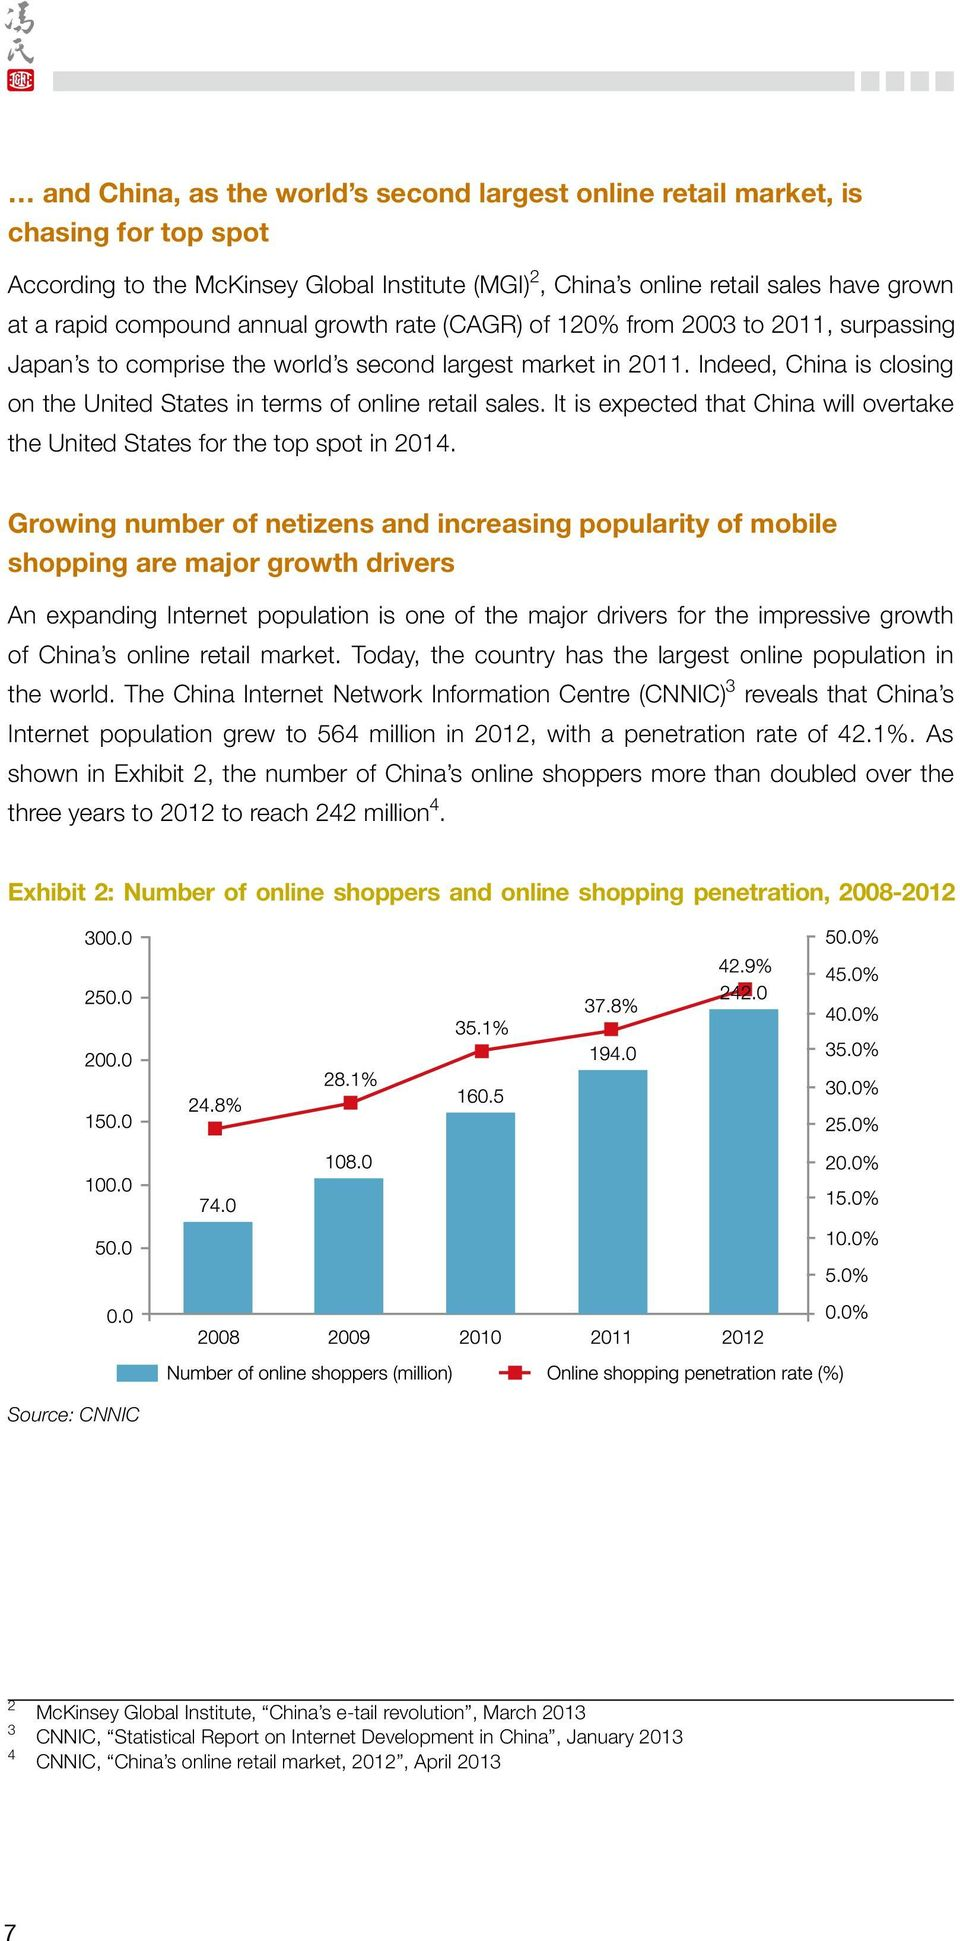 It is expected that China will overtake the United States for the top spot in 2014.